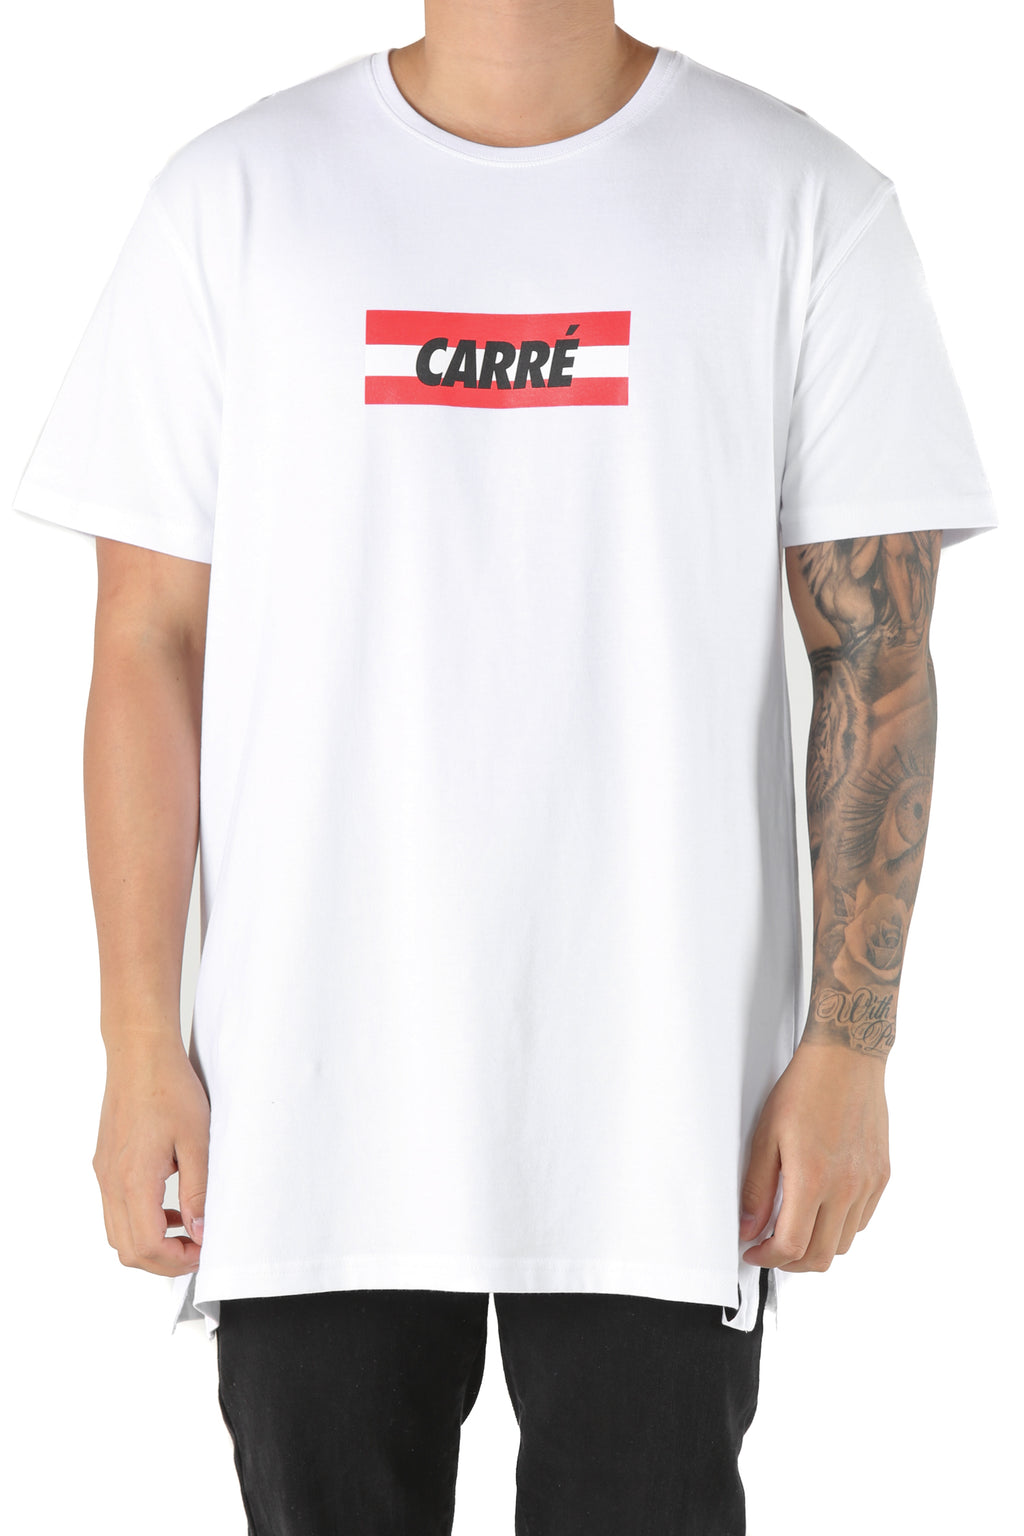 Carré Bande Incline Divise Tee White